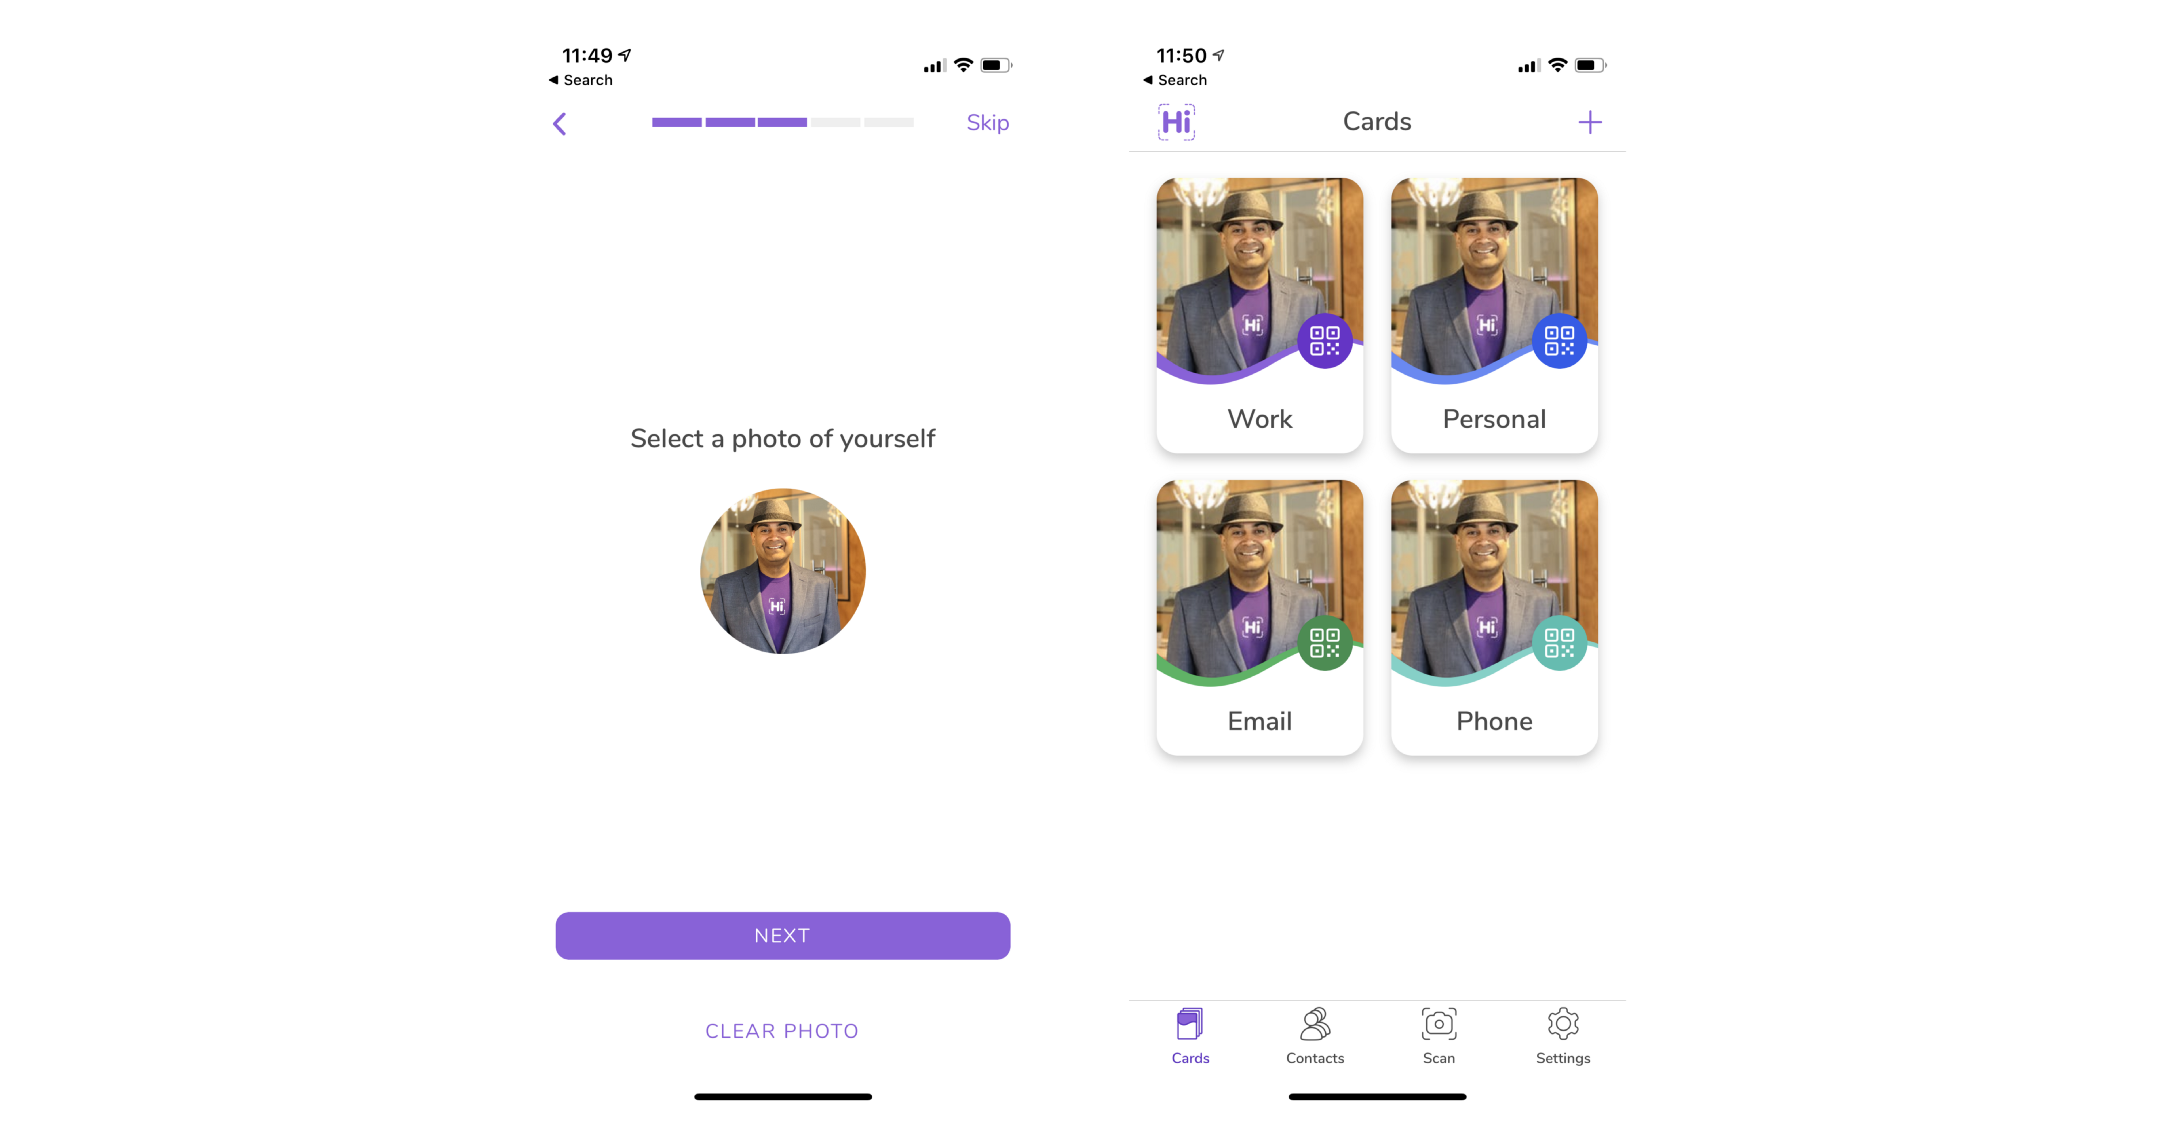 HiHello onboarding. Add a picture and card view.